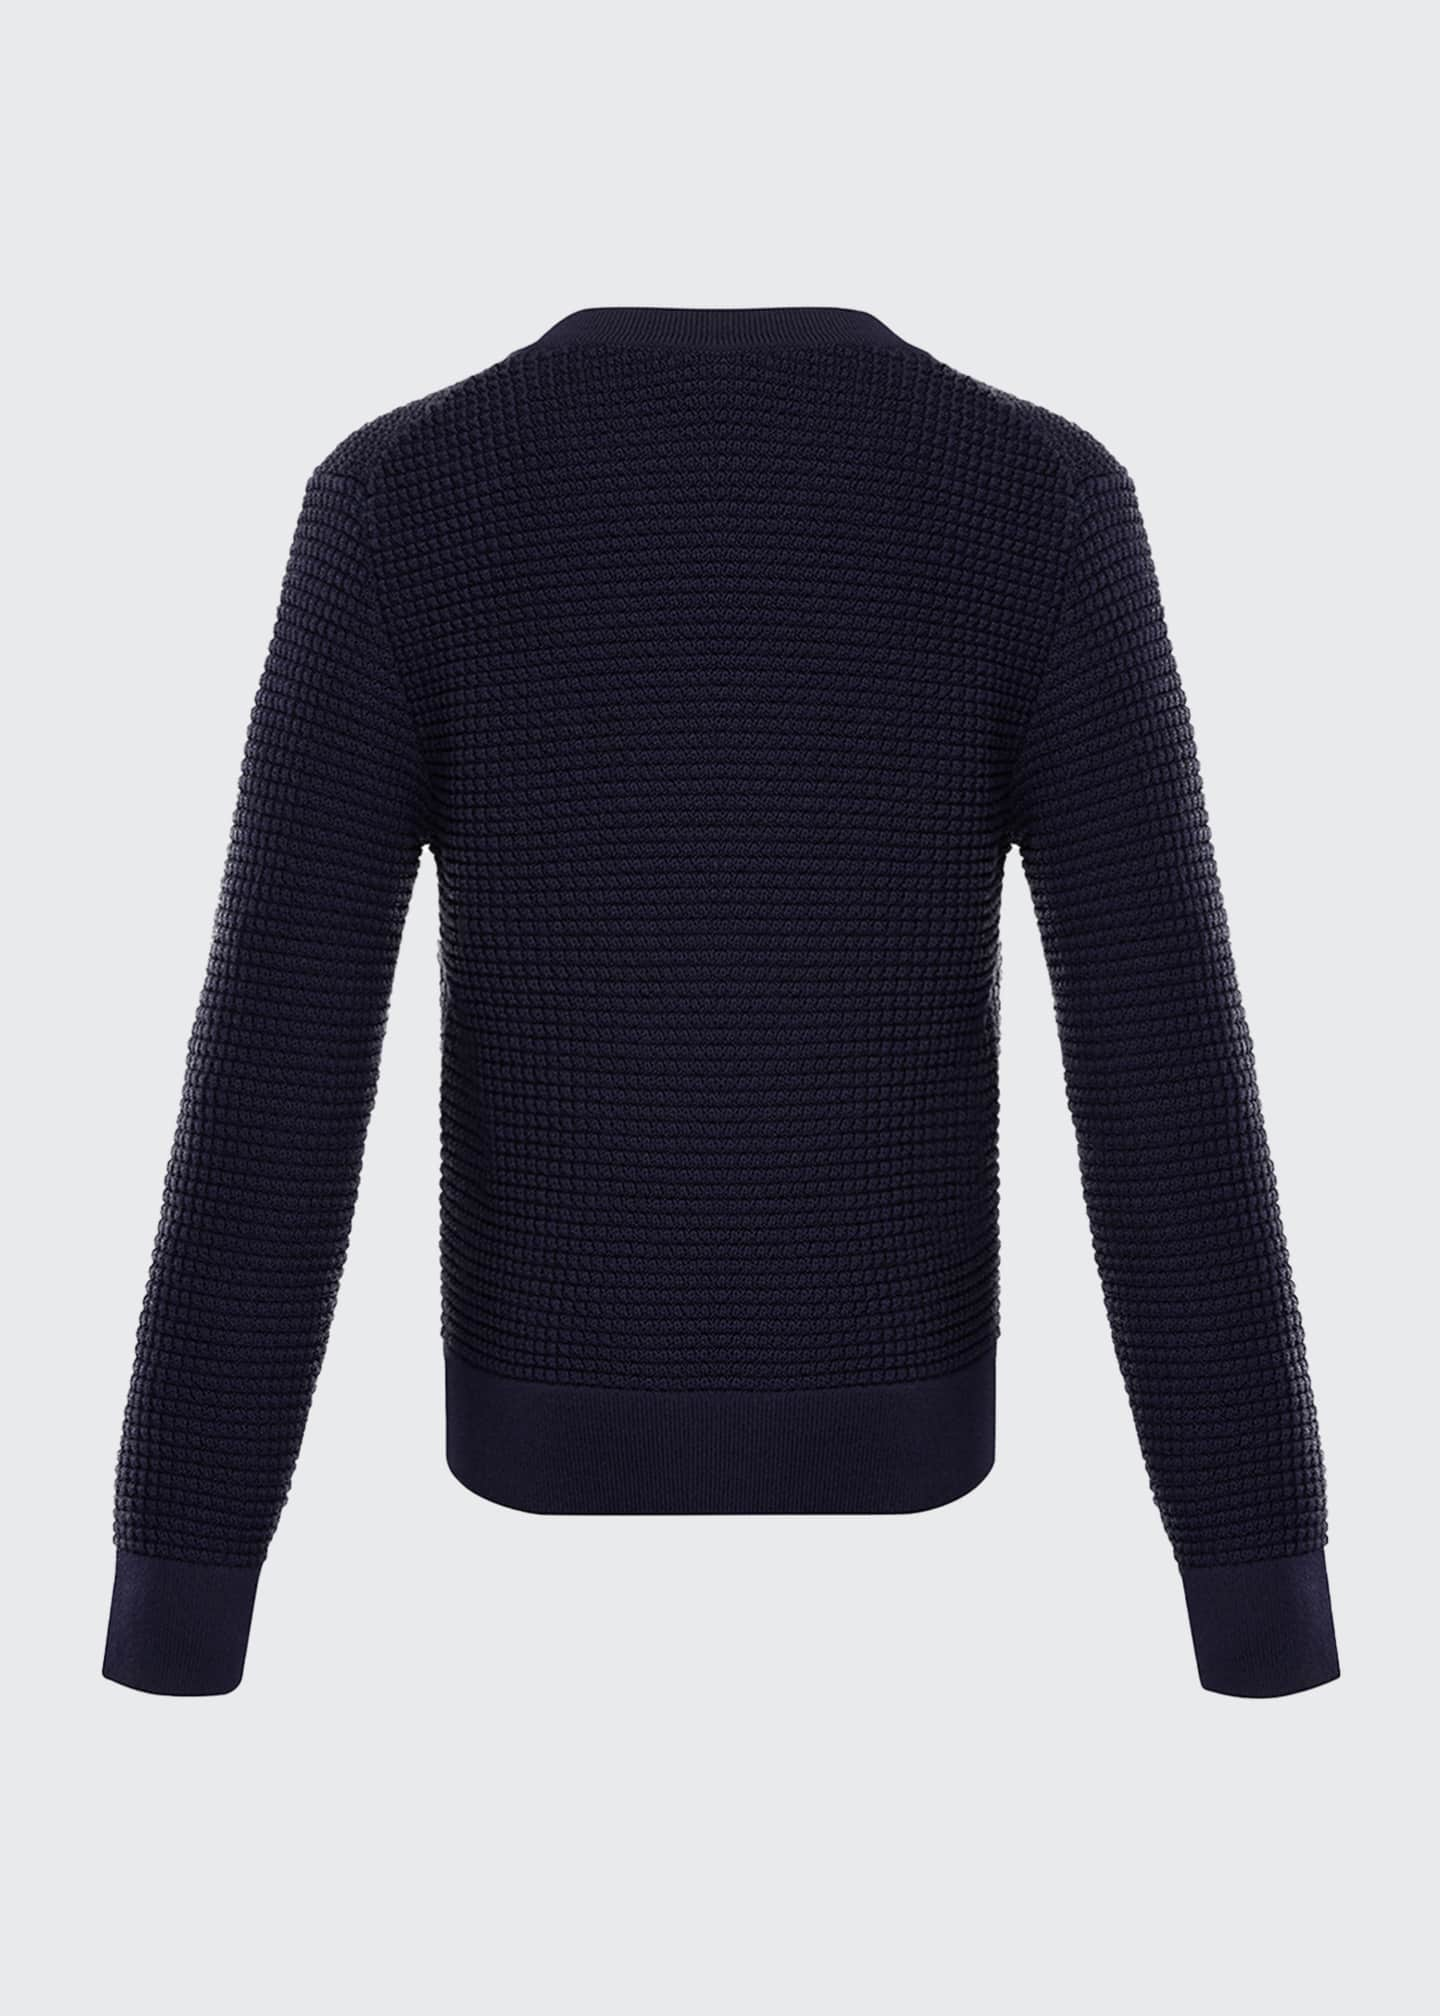 Image 2 of 2: Boy's Textured Crewneck Sweater w/ Center Stripe, Size 4-6